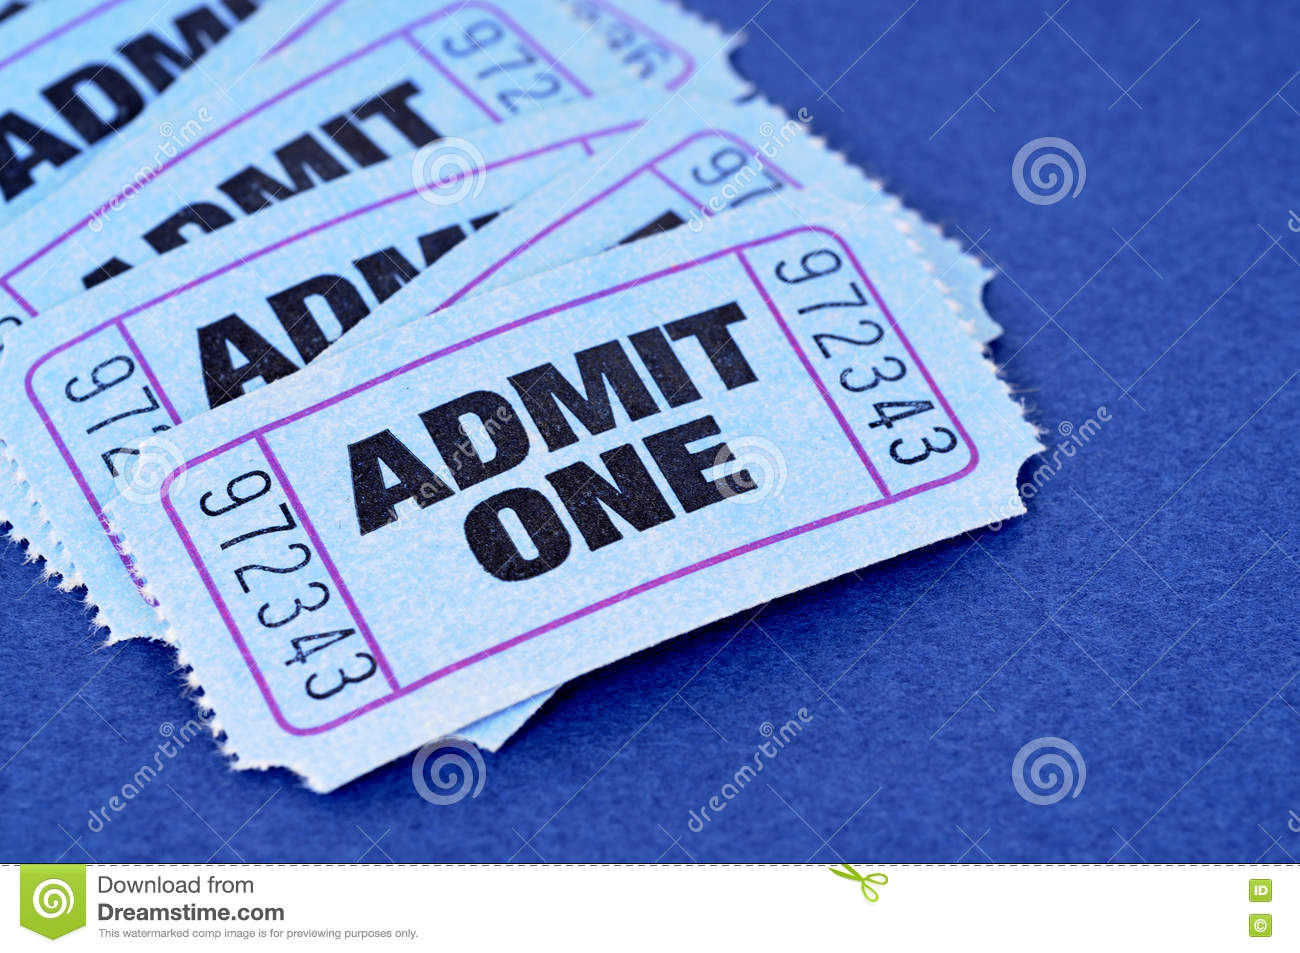 Admit one tickets, blue, untidy pile or stack, closeup